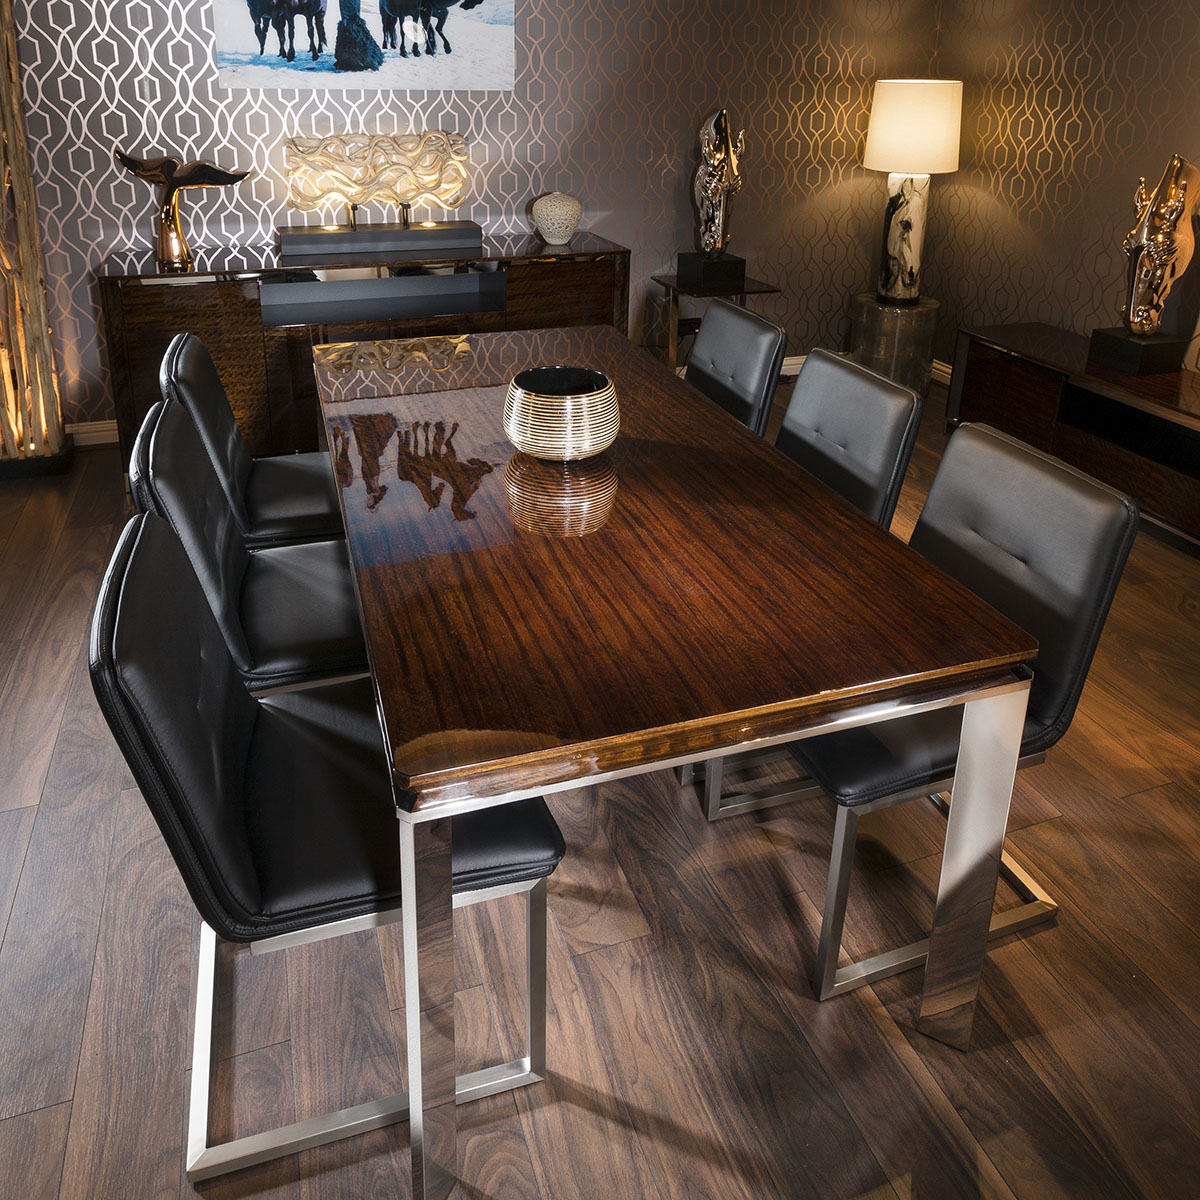 Teak Dining Room Chairs Details About Rectangular Golden Teak Dining Table 1 8m 6 Black Cantilever Chairs